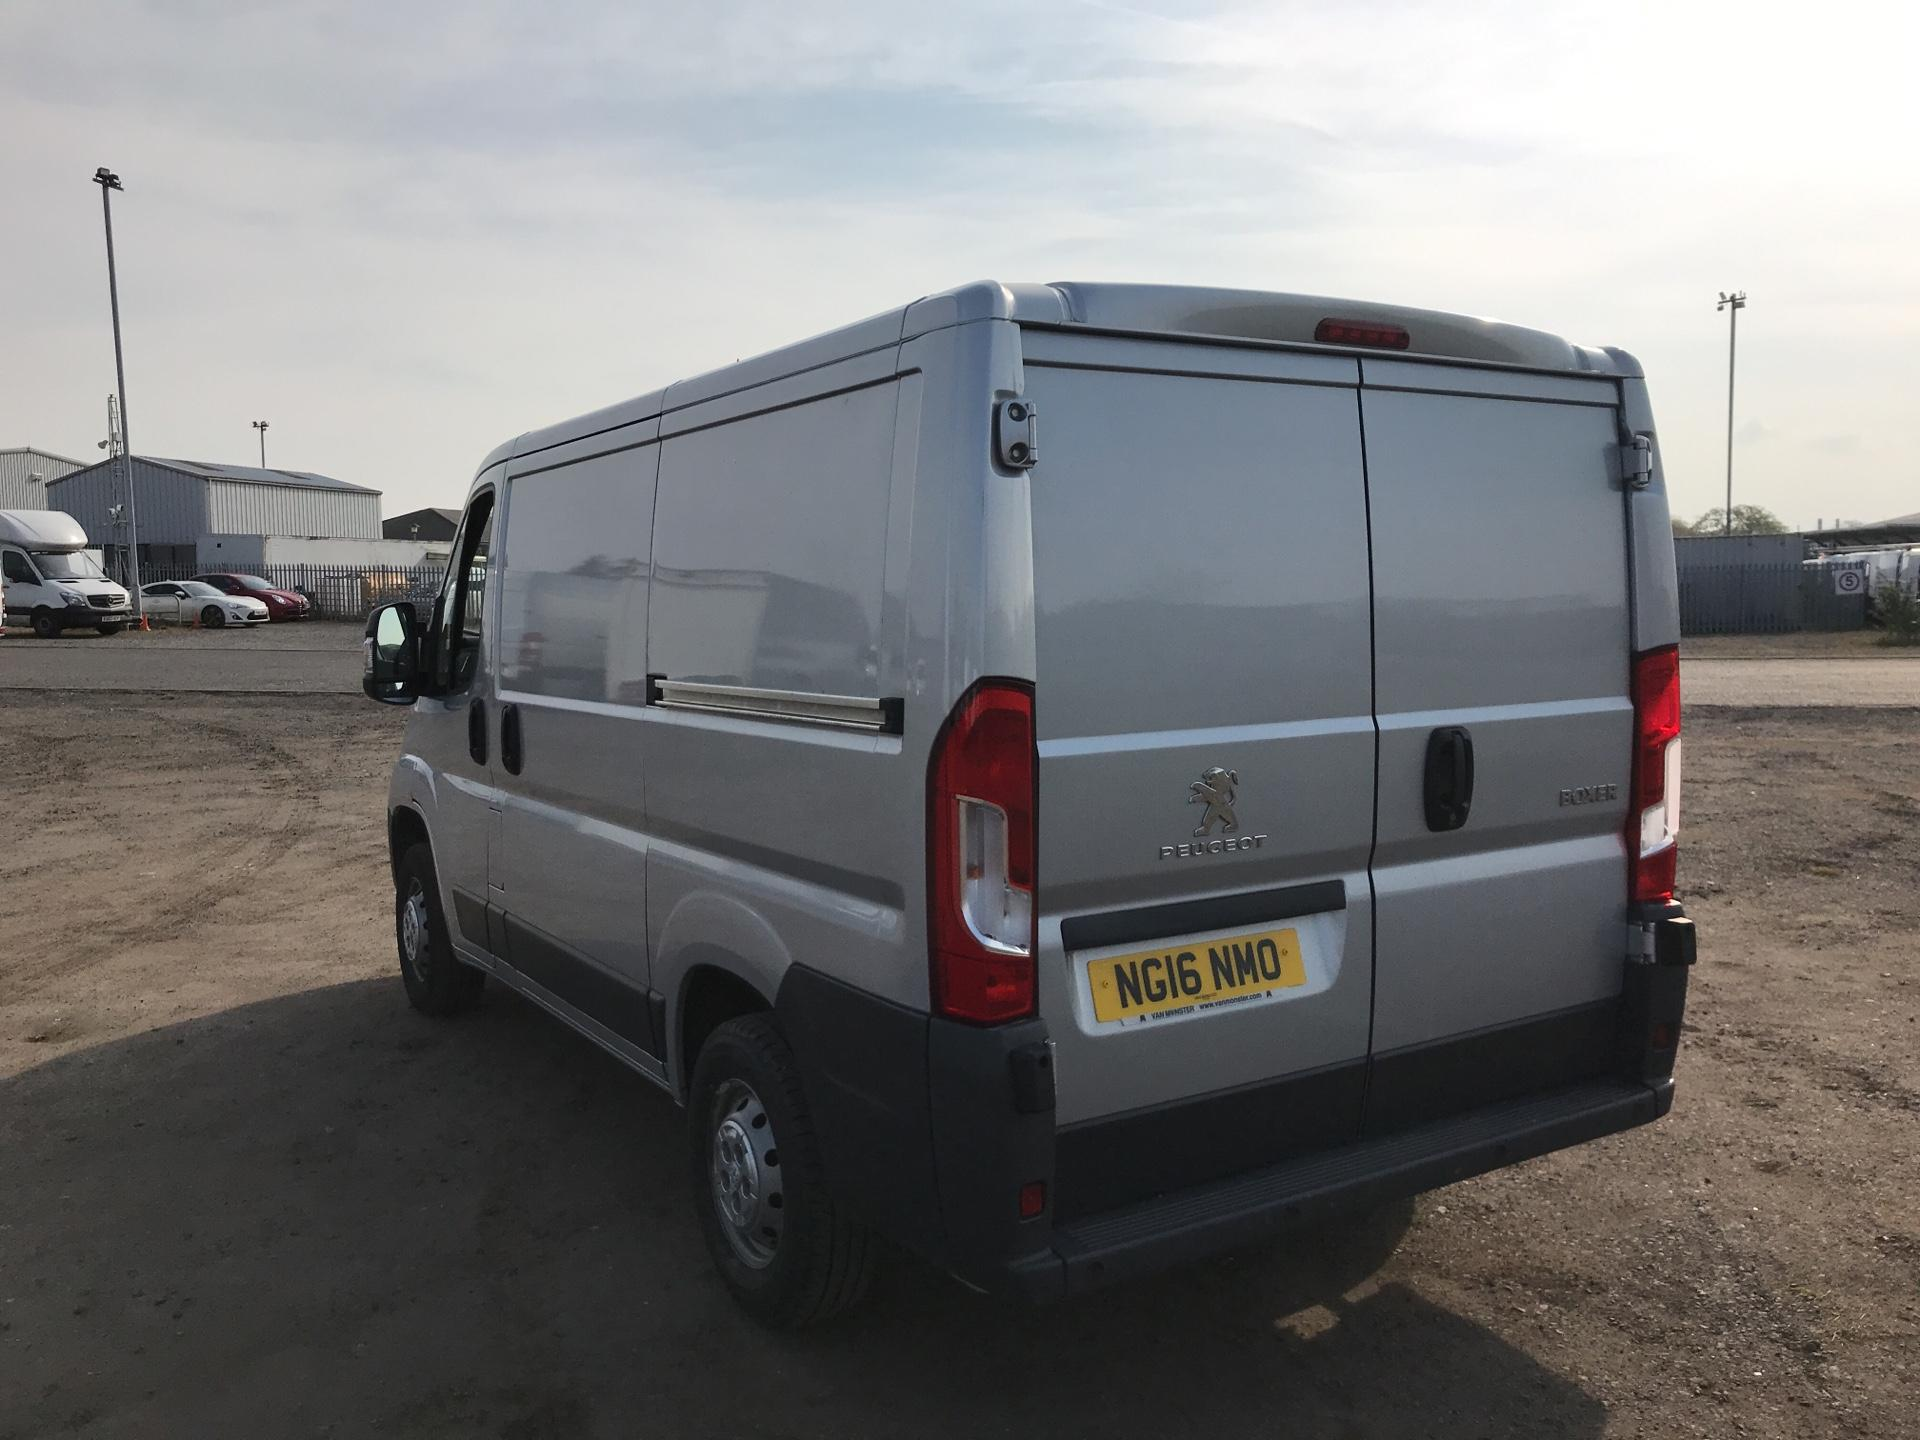 2016 Peugeot Boxer 2.0 Bluehdi H1  Professional Van 110Ps *VALUE RANGE VEHICLE CONDITION REFLECTED IN PRICE* (NG16NMO) Image 5